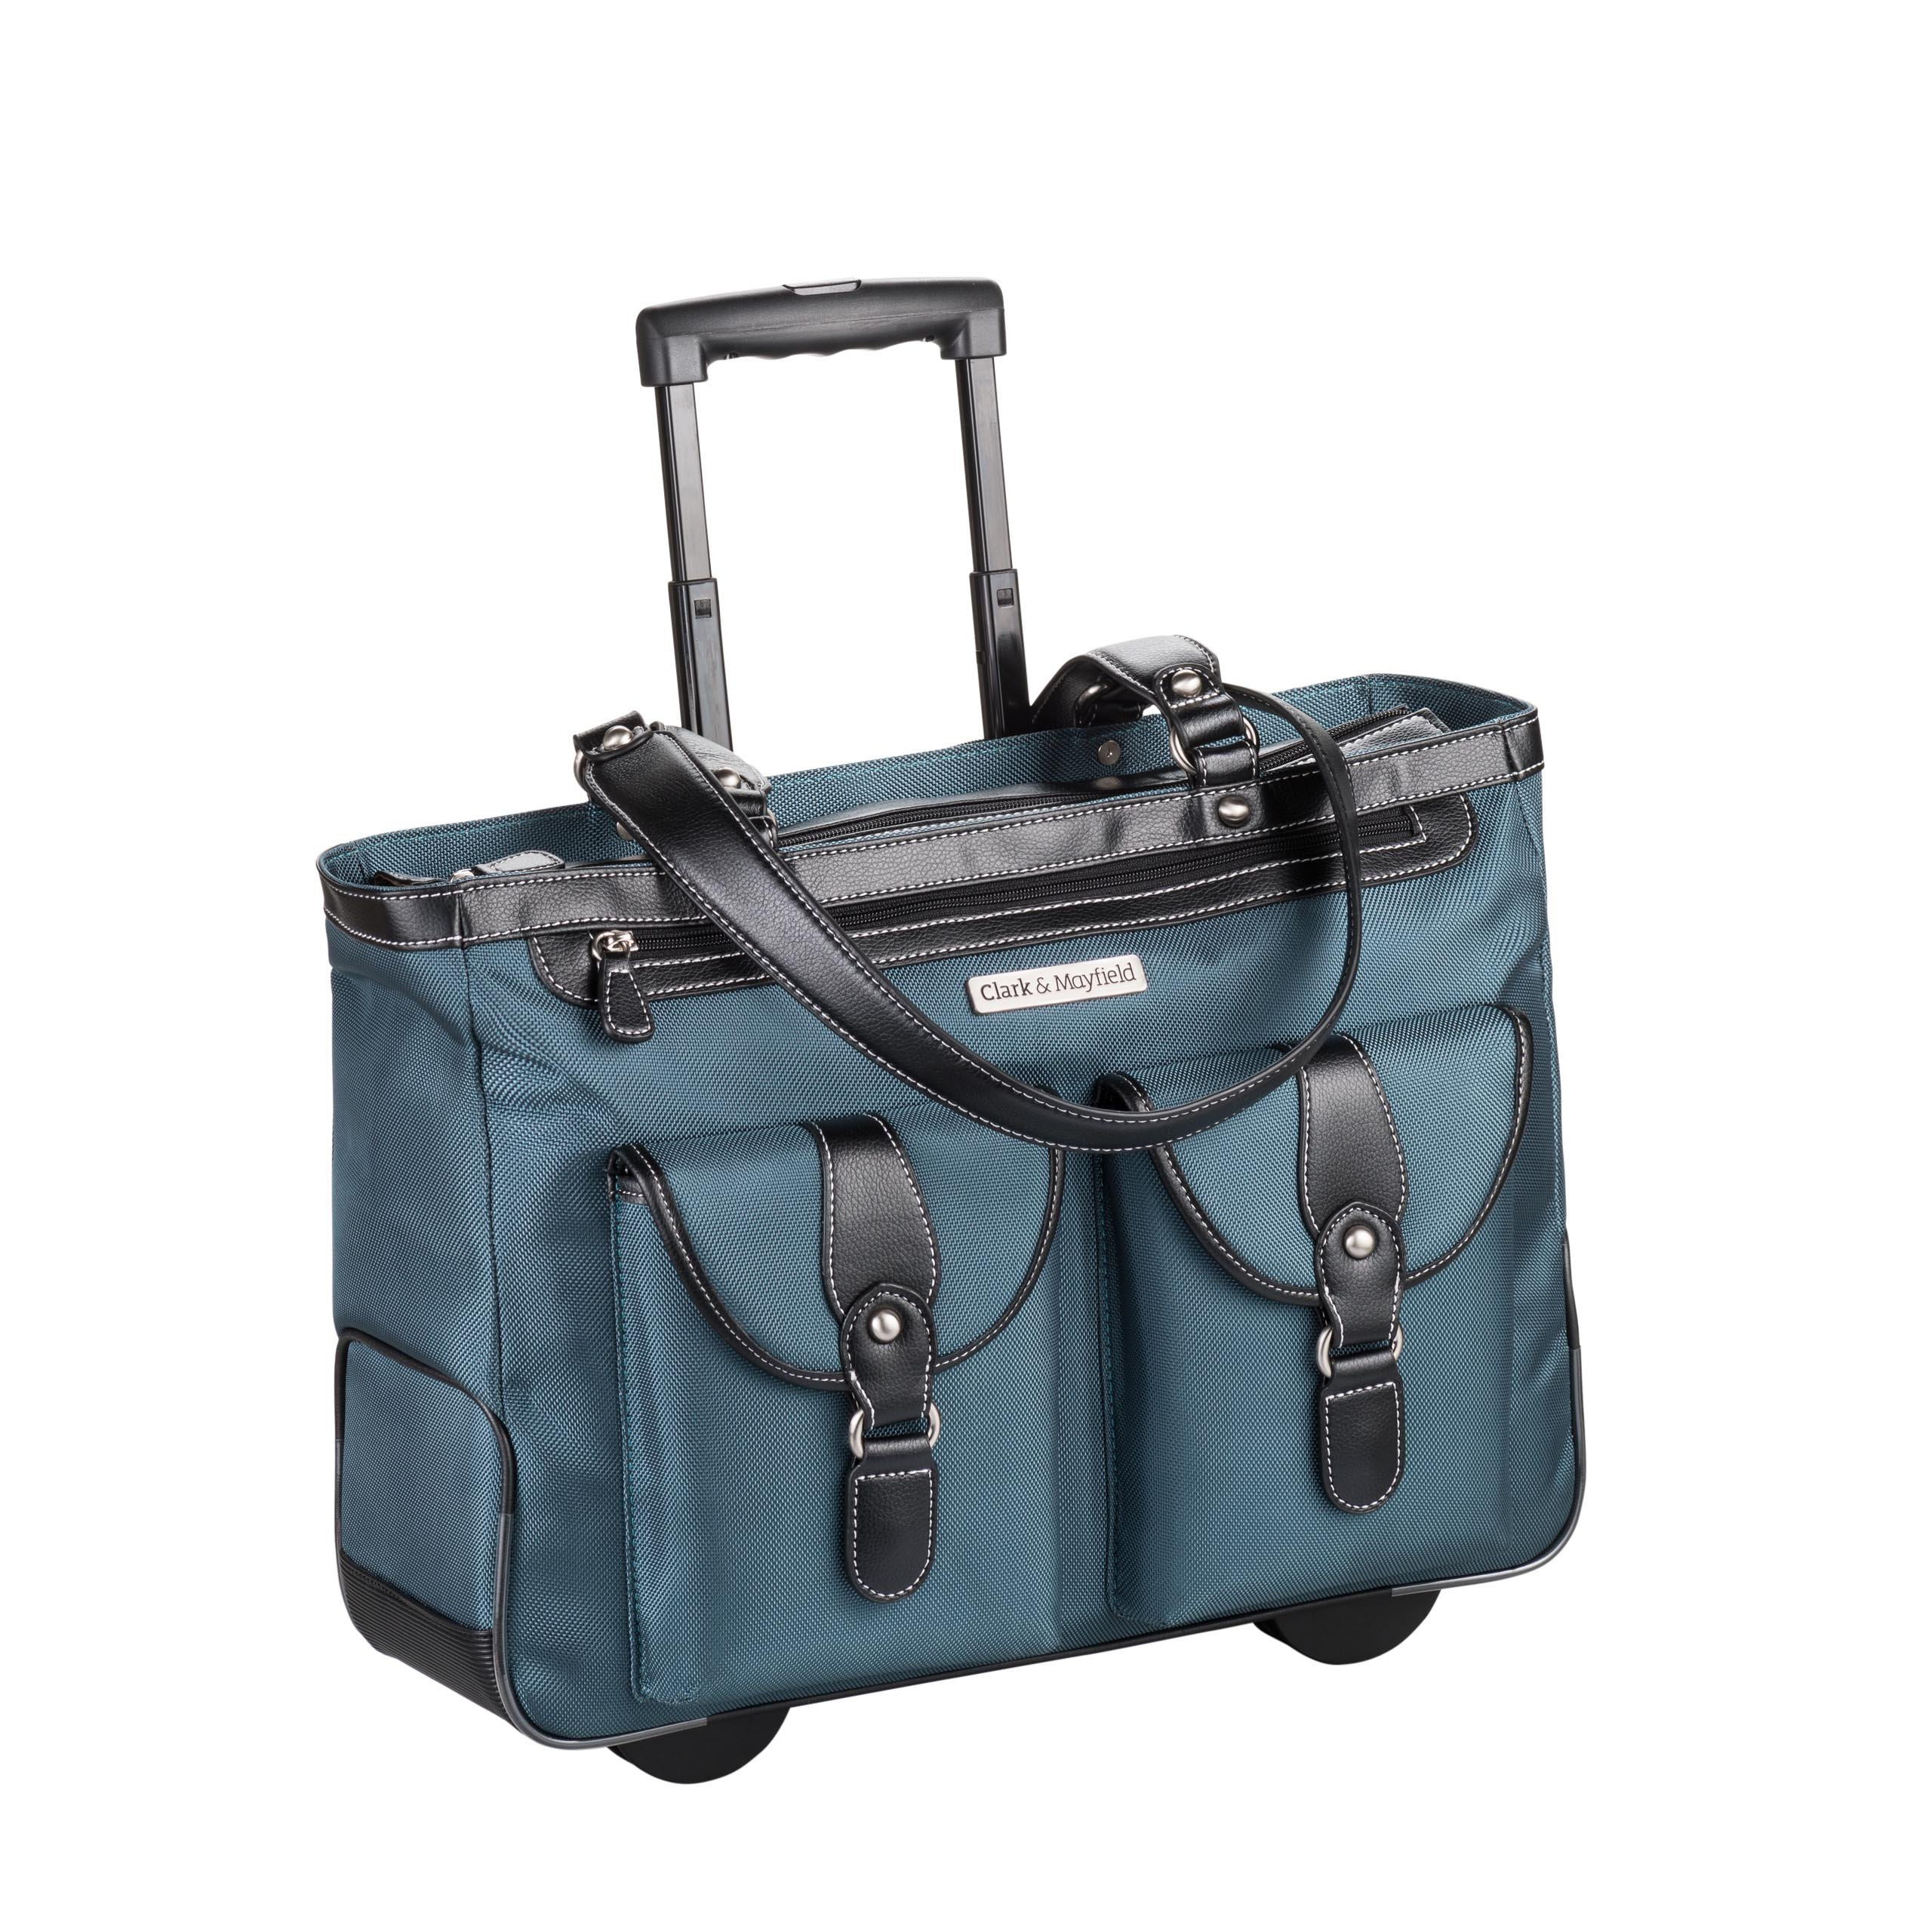 Clark & Mayfield Marquam Rolling Laptop Tote 18.4'' (Deep Teal)